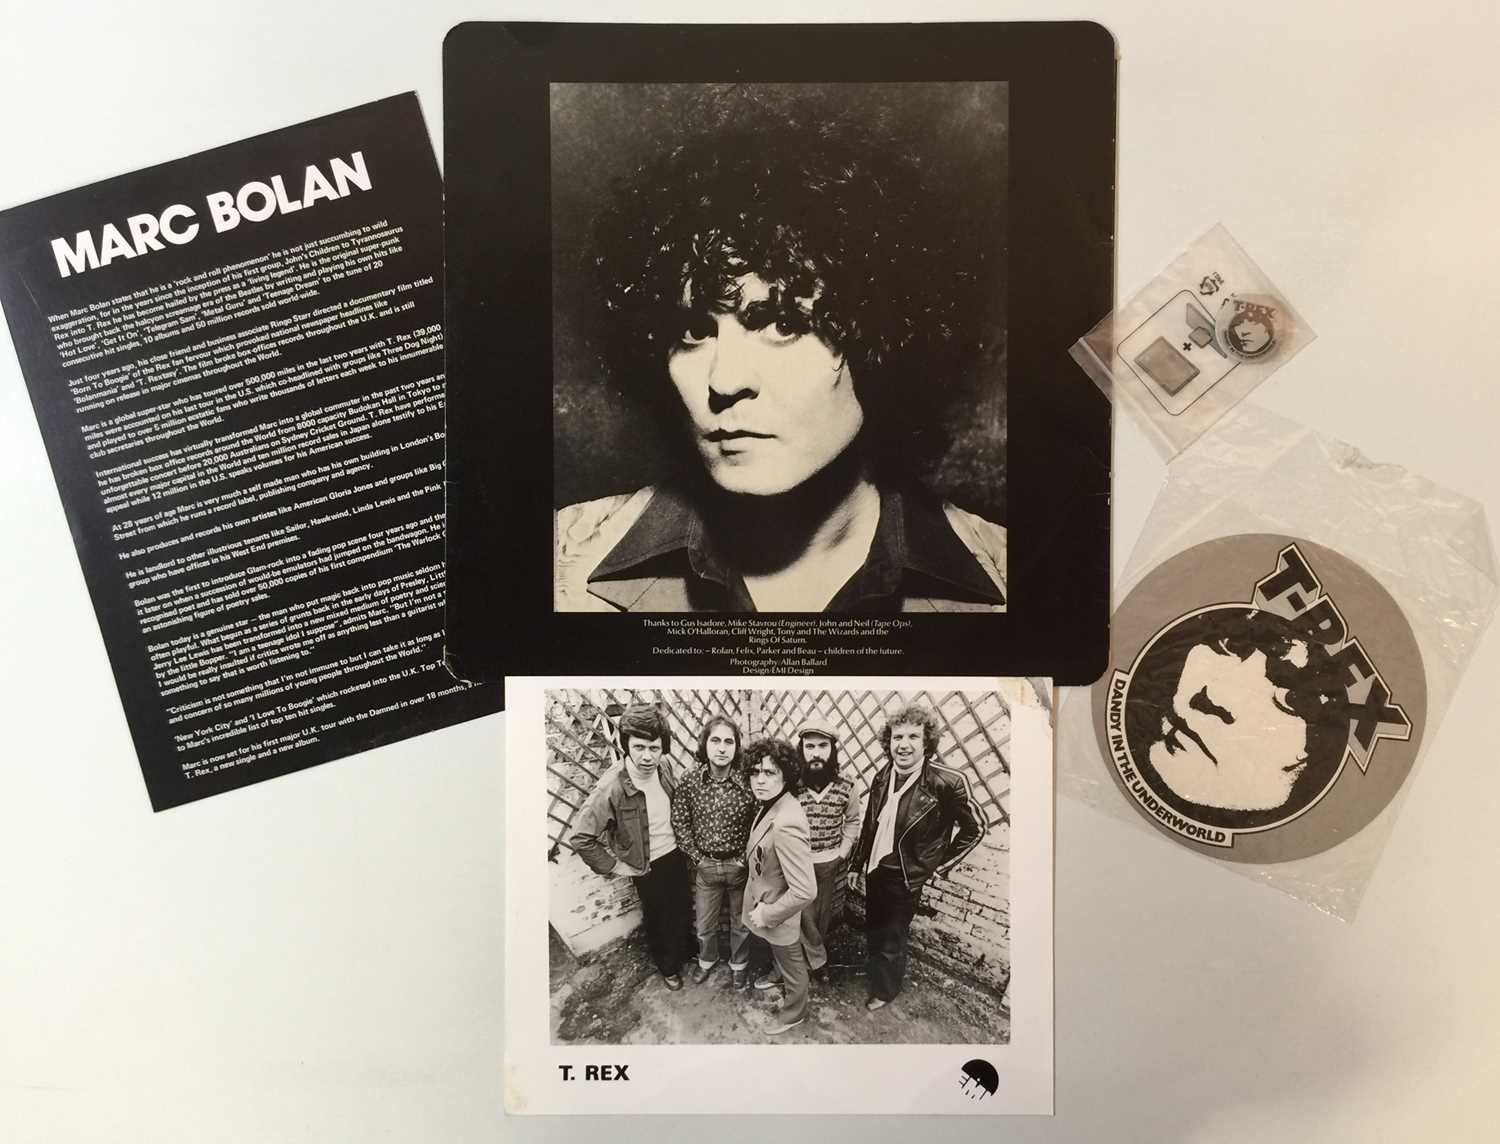 T REX - DANDY IN THE UNDERWORLD LP - WITH PRE-RELEASE PROMO PACK - Image 5 of 5